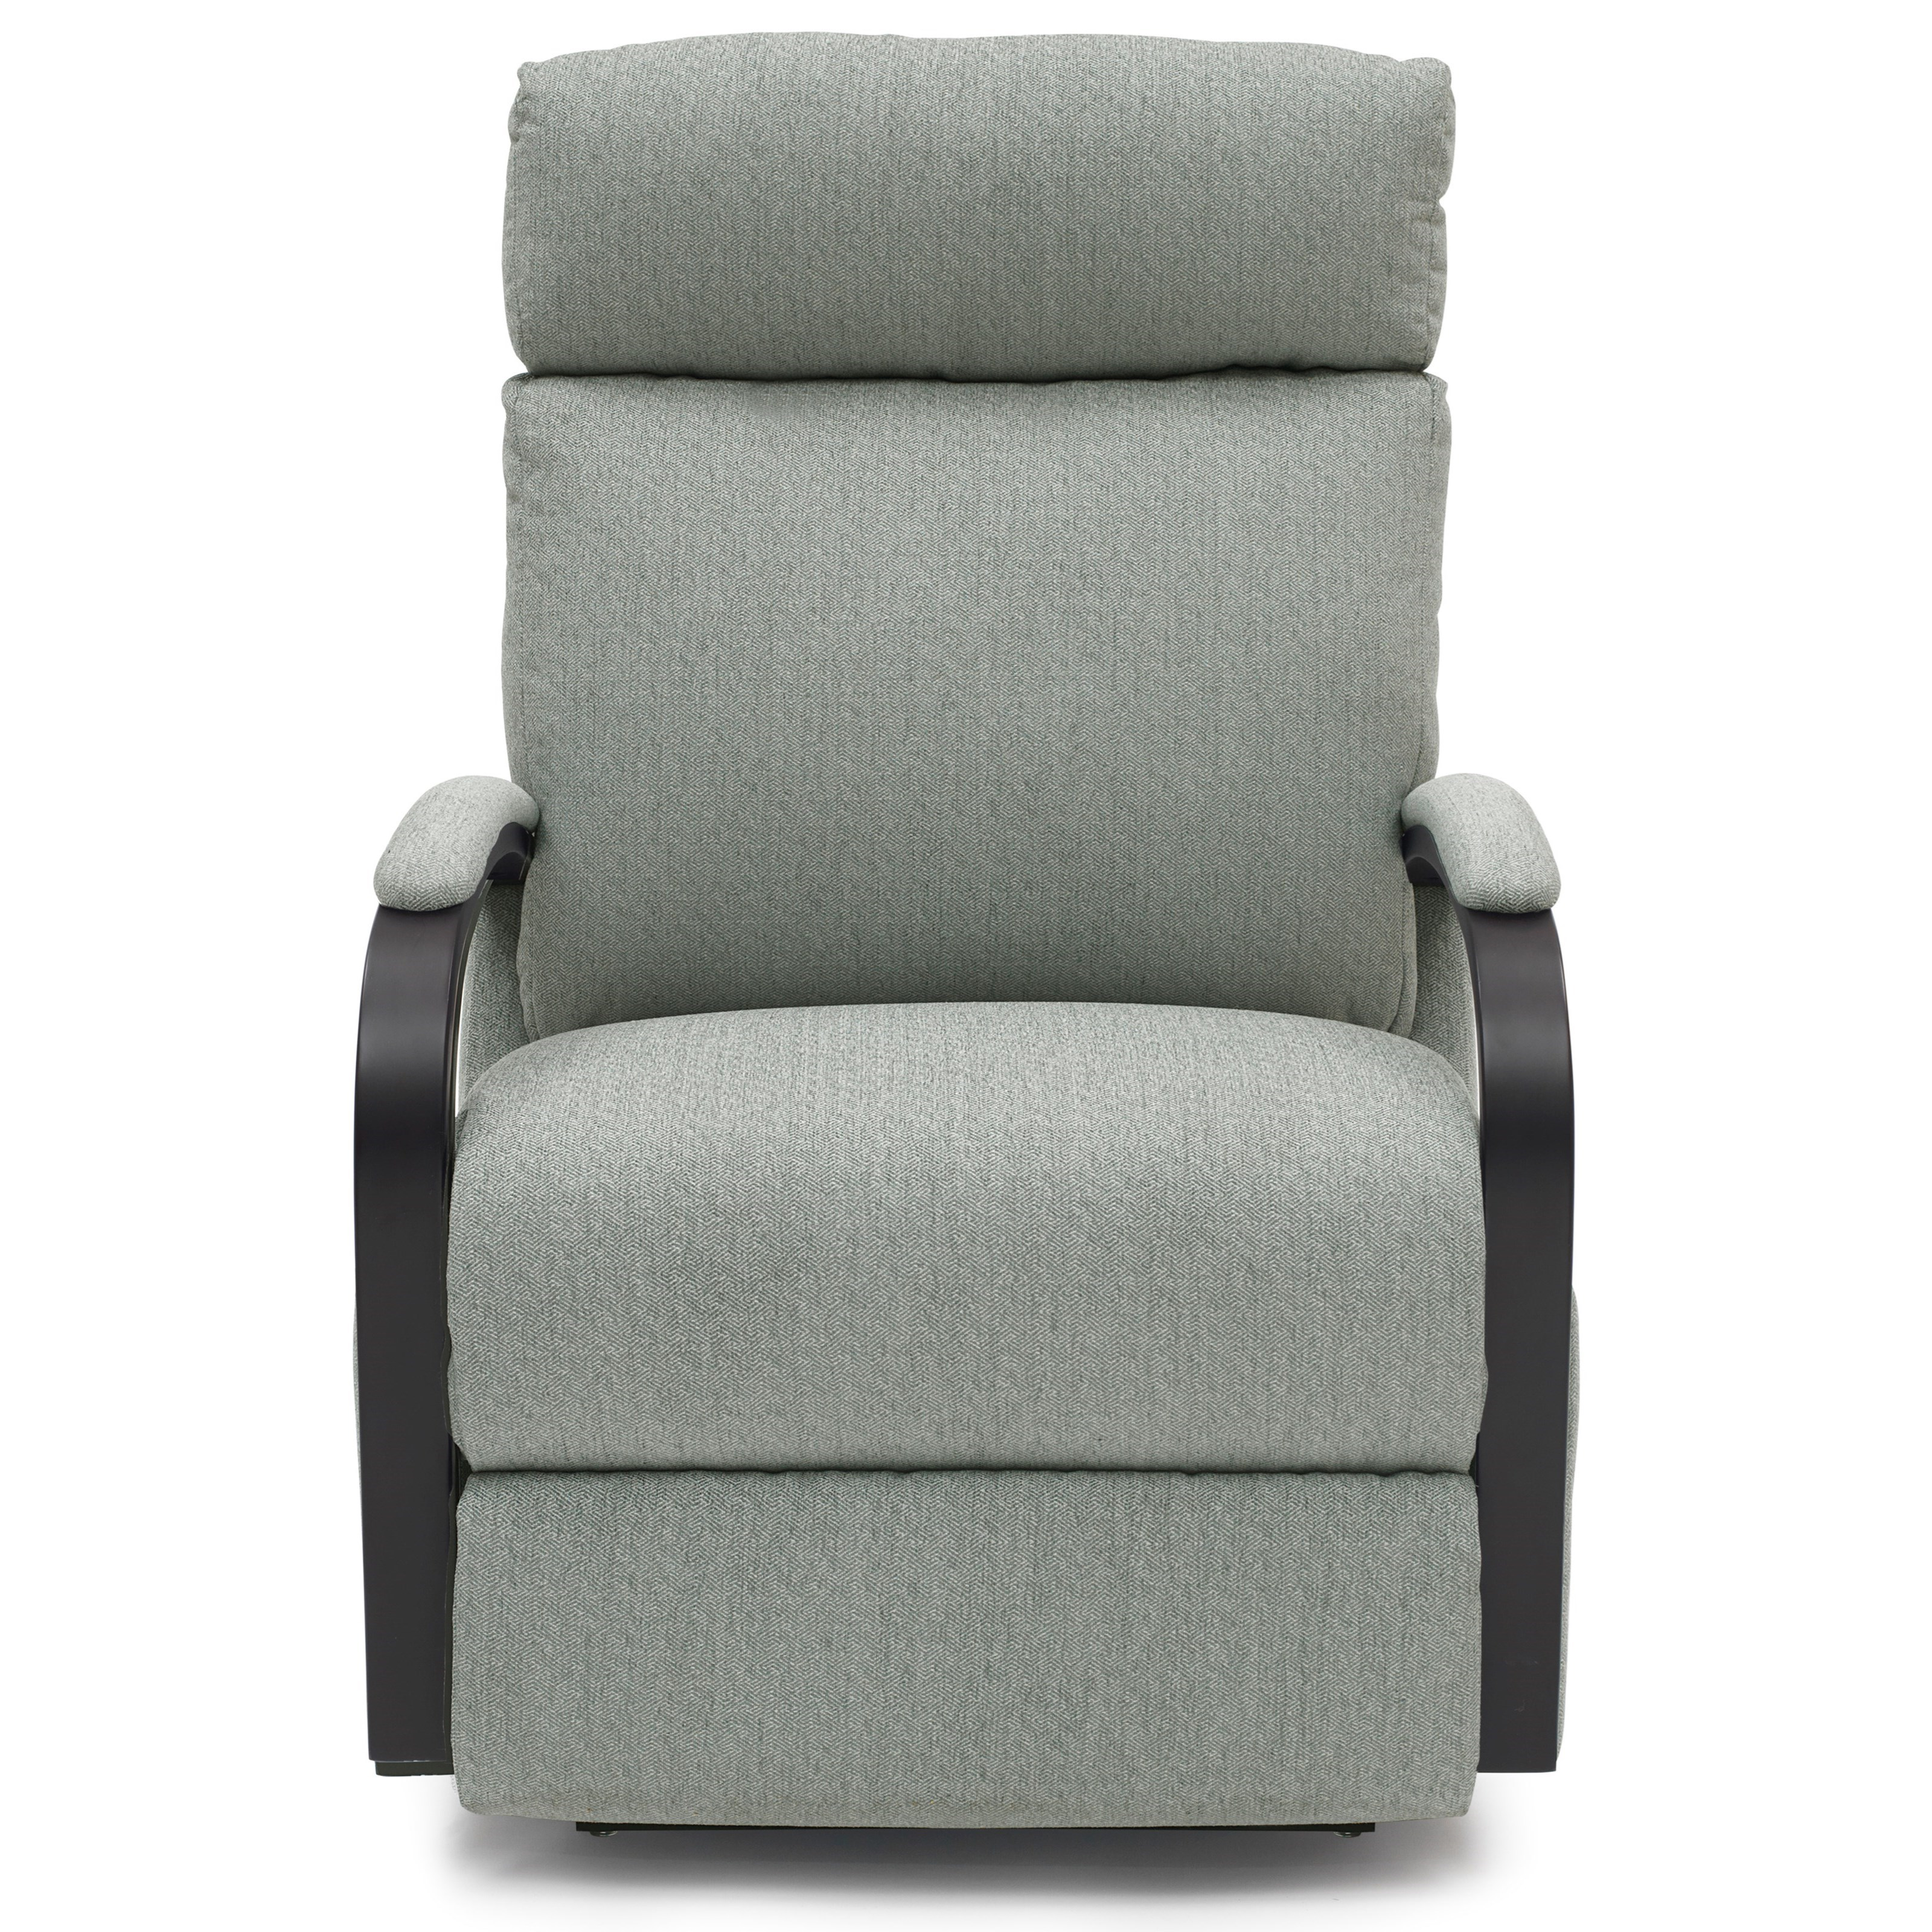 Kinetix Space Saver Recliner by Best Home Furnishings at Walker's Furniture